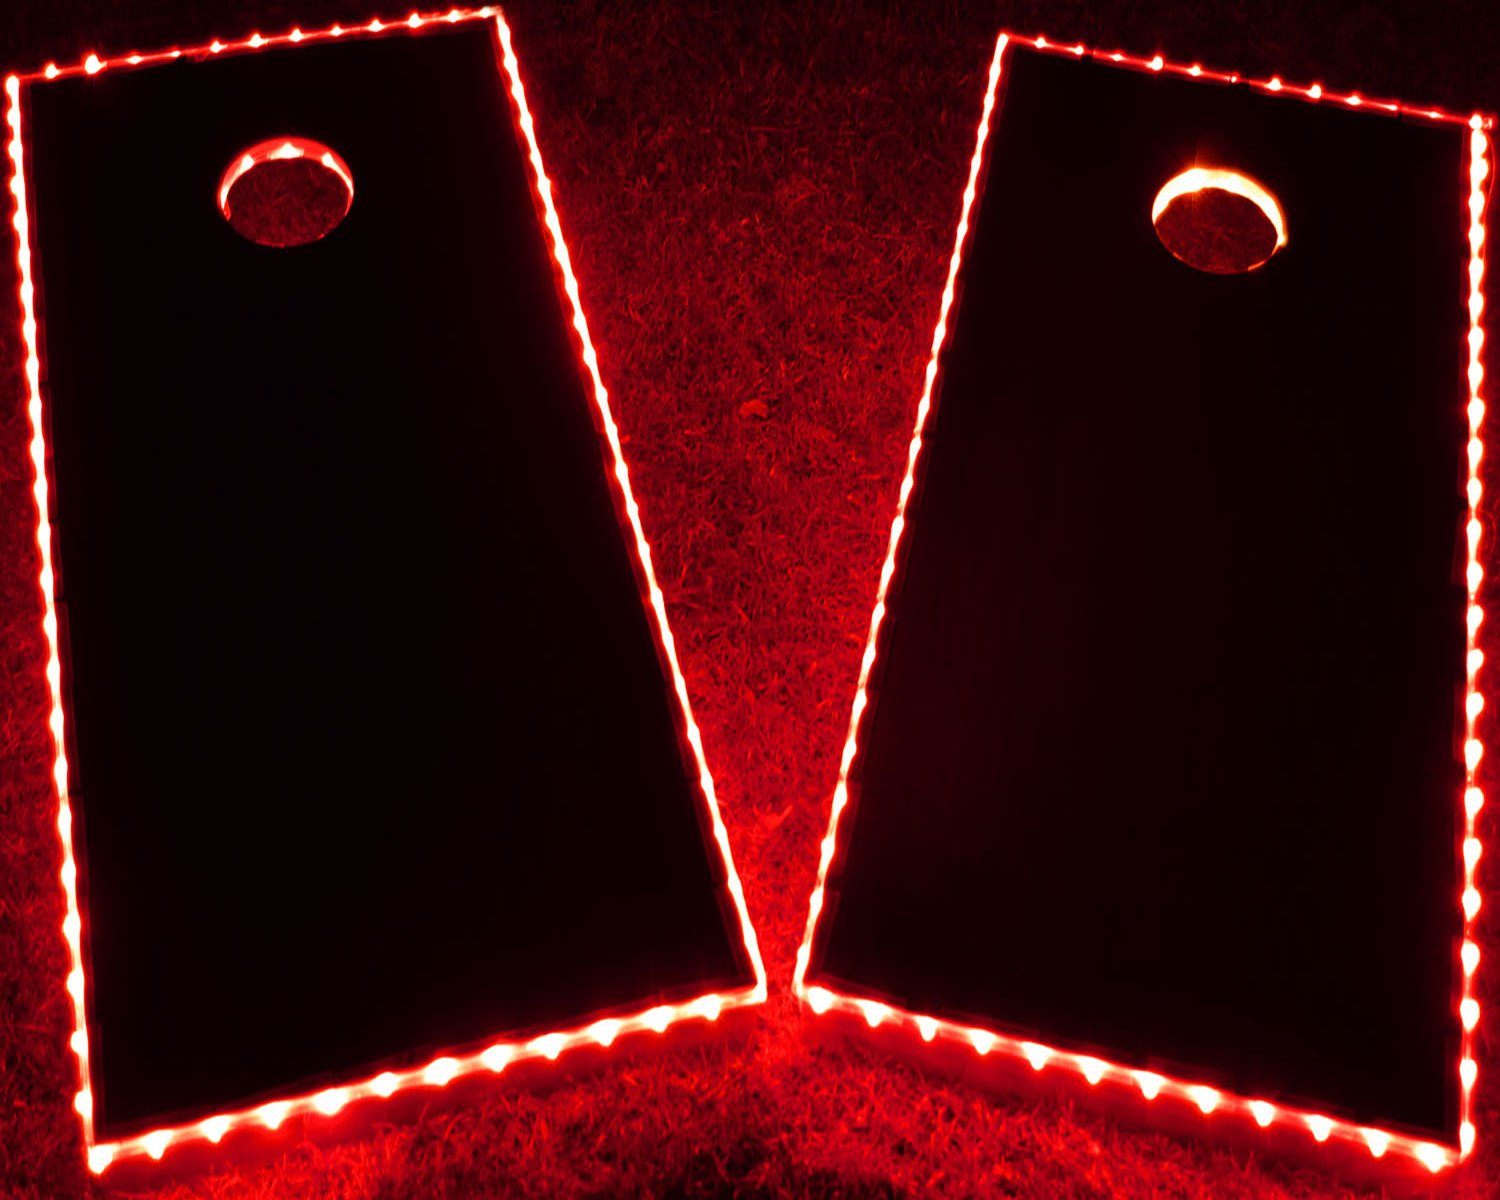 GlowCity LED Cornhole Board Lights - Ultra Bright Lights for Corn Hole and Board, Fits 2 x Boards - Waterproof and Durable Cable Ideal for Family Outdoor Games or Backyard Glow in The Dark Fun (Red) by GlowCity